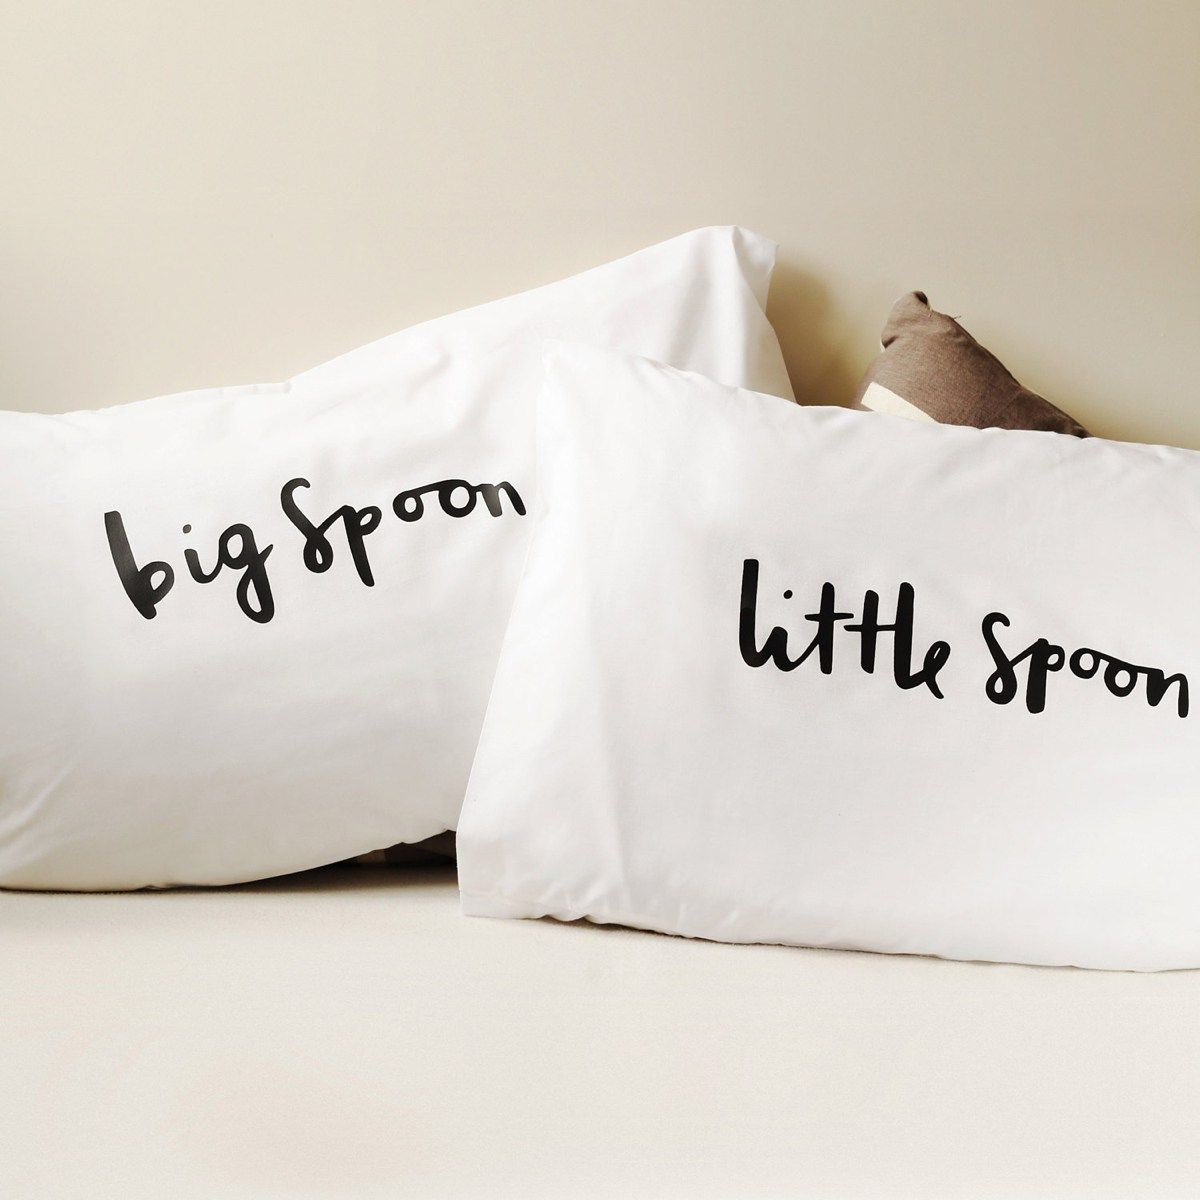 Fabulously quirky cool wedding gift ideas from prezola gift and linens